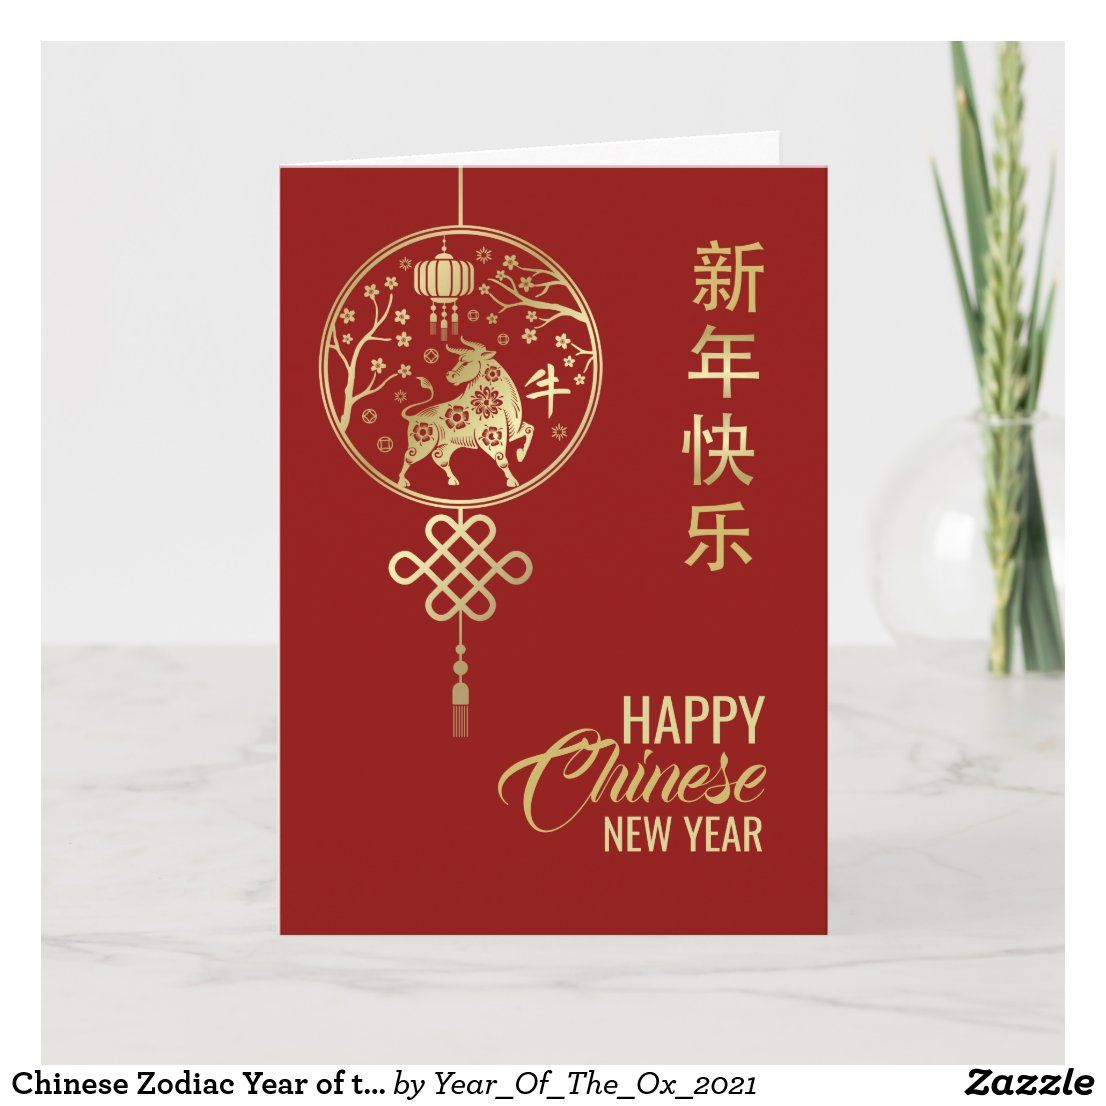 Chinese Zodiac Year of the Ox 2021 Card in